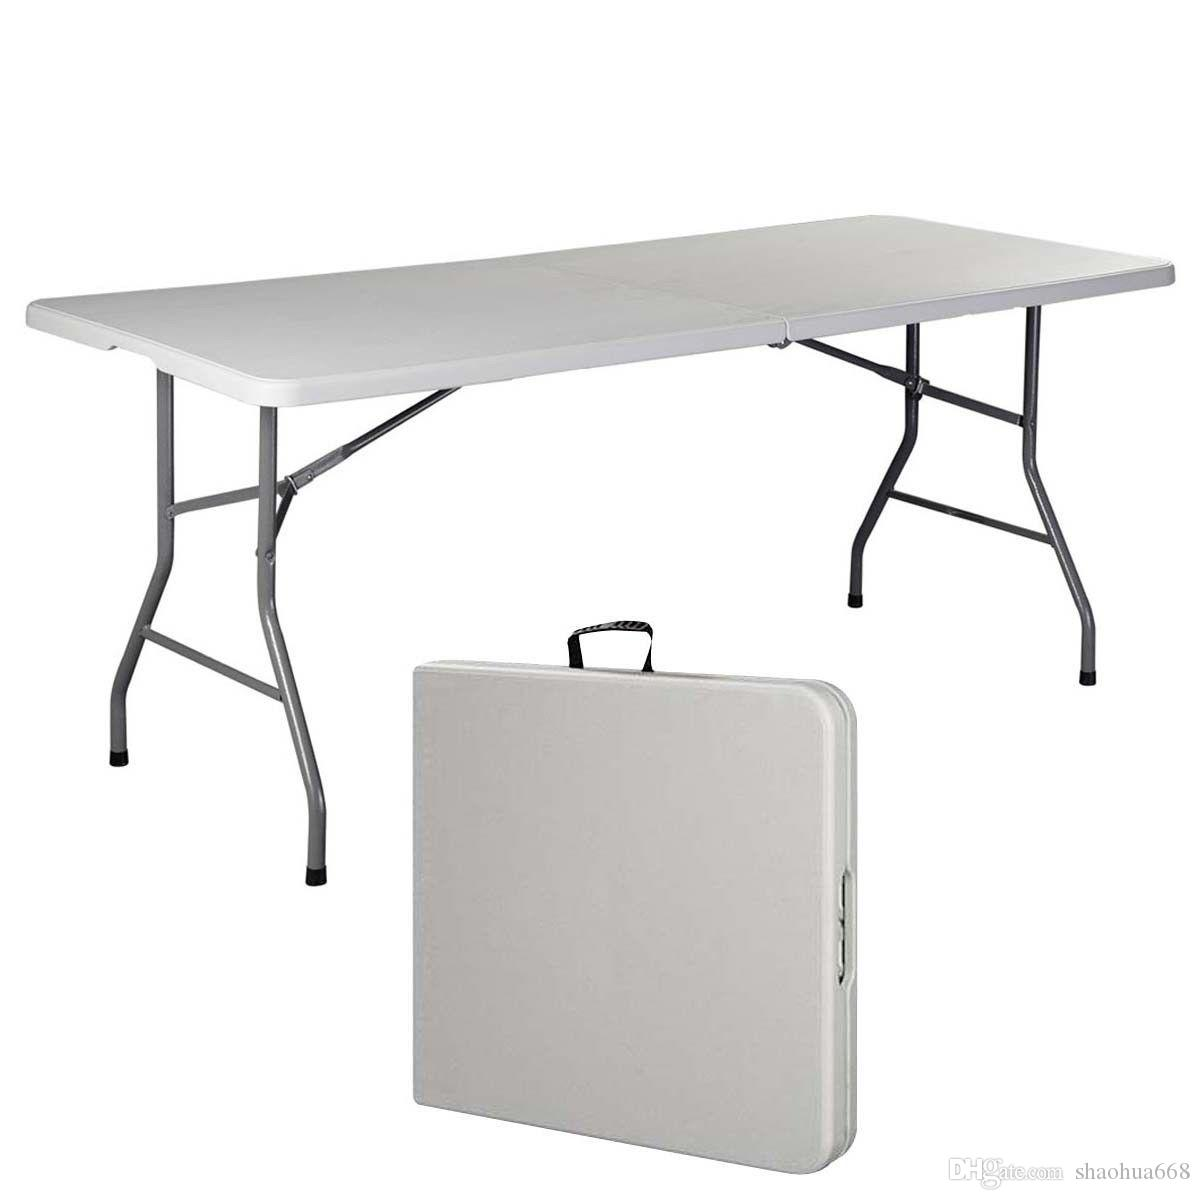 2017 6 folding table portable plastic indoor outdoor for 0 60 table